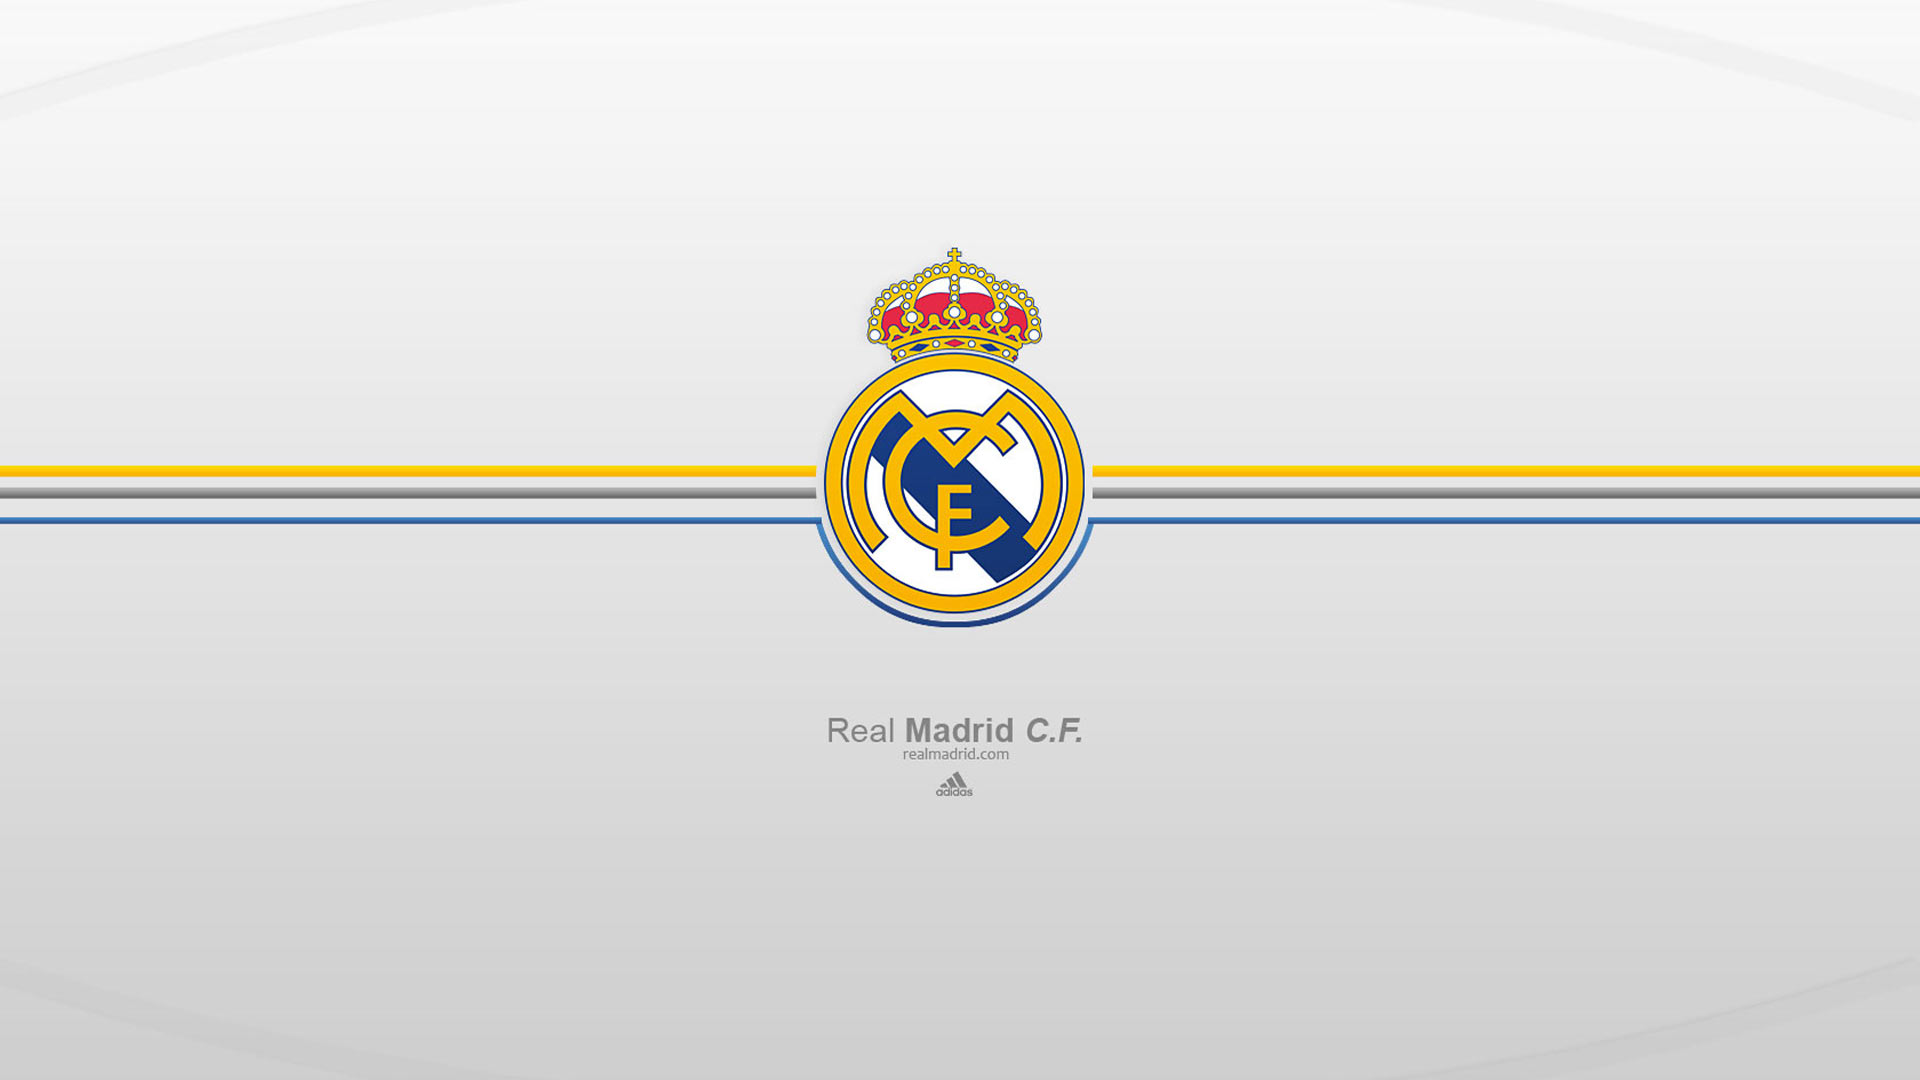 Real Madrid Wallpaper 1920x1080